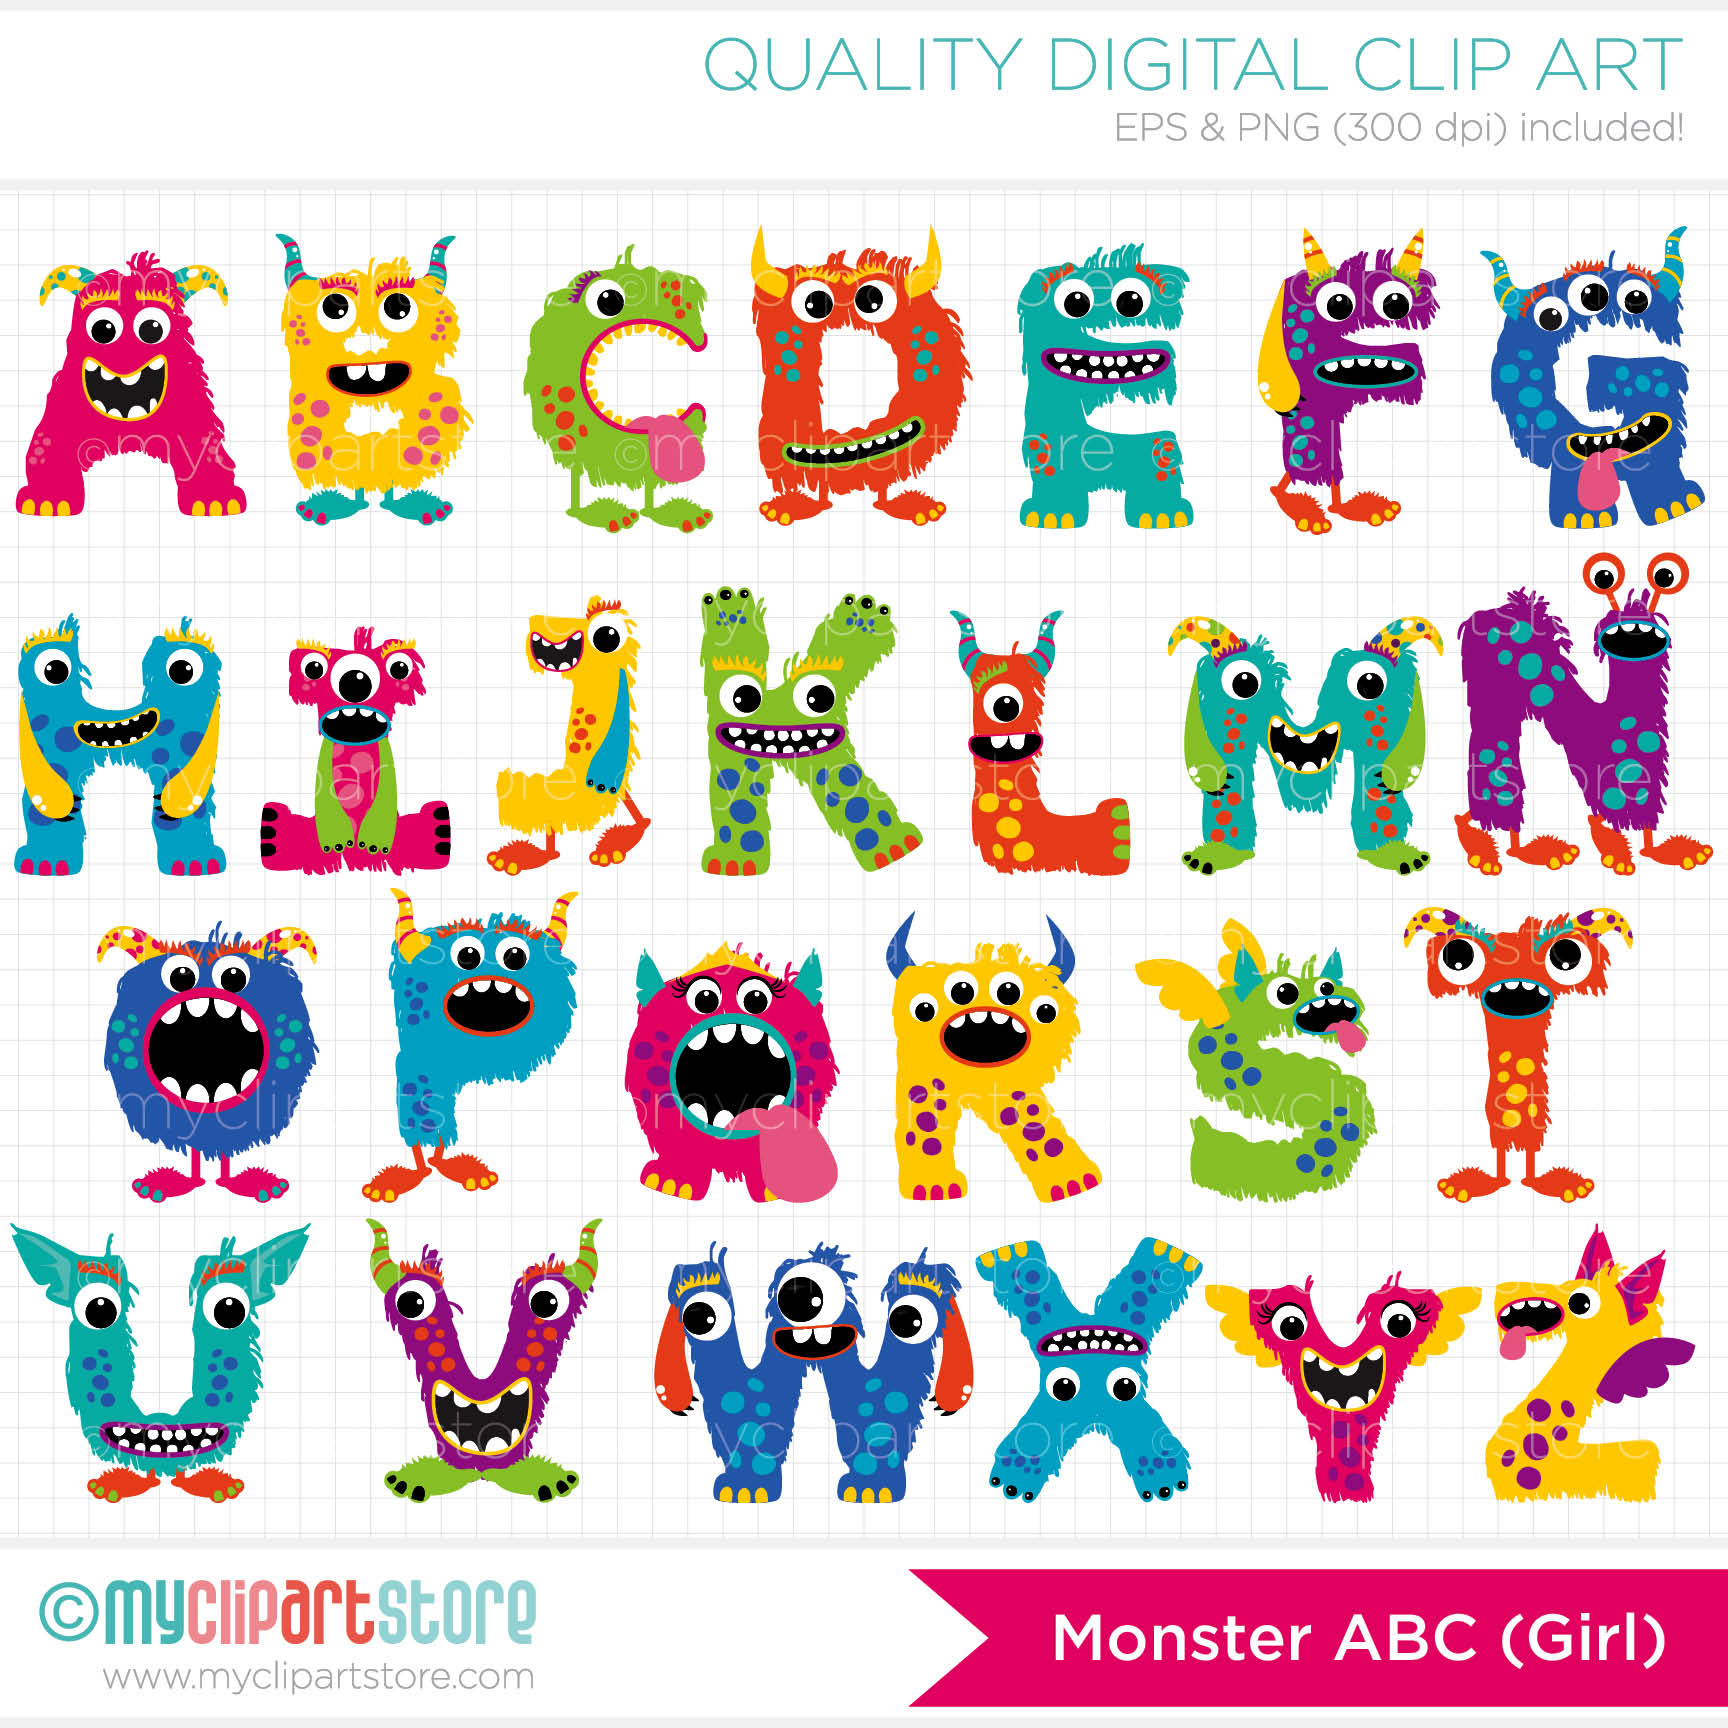 Letter Printable Images Gallery Category Page 39